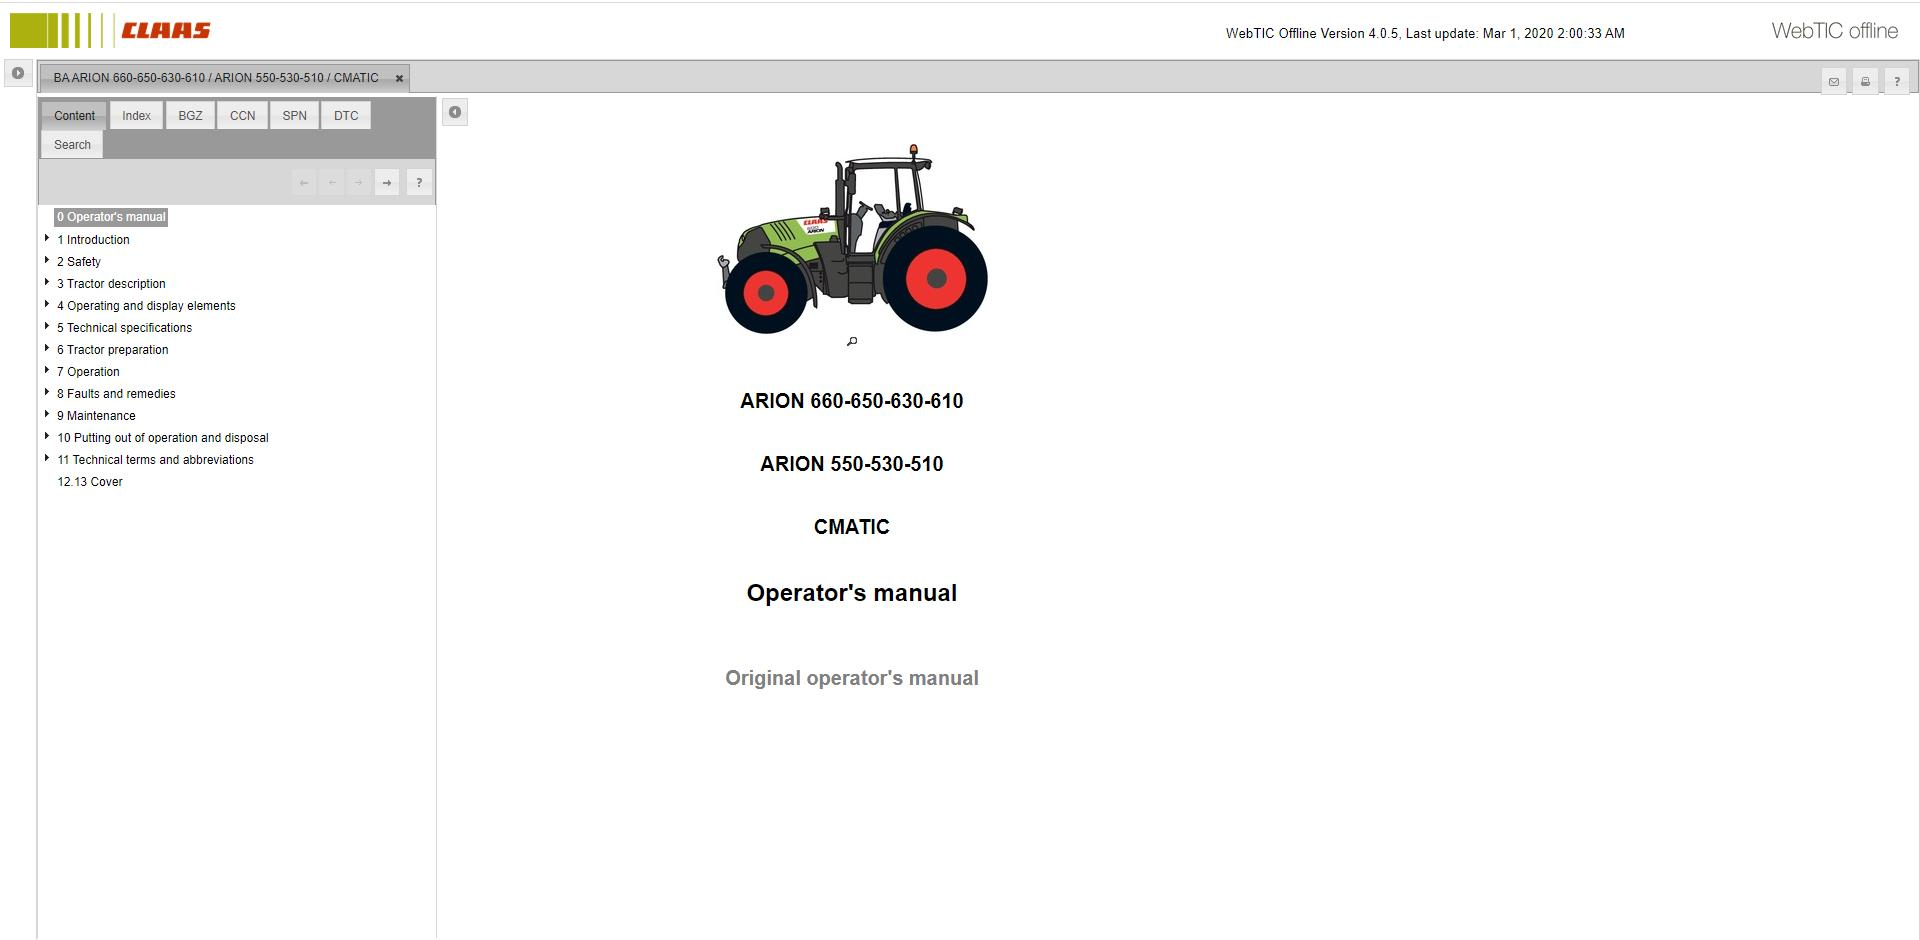 CLAAS WebTIC Offline [03.2020] Operator Manual & Repair